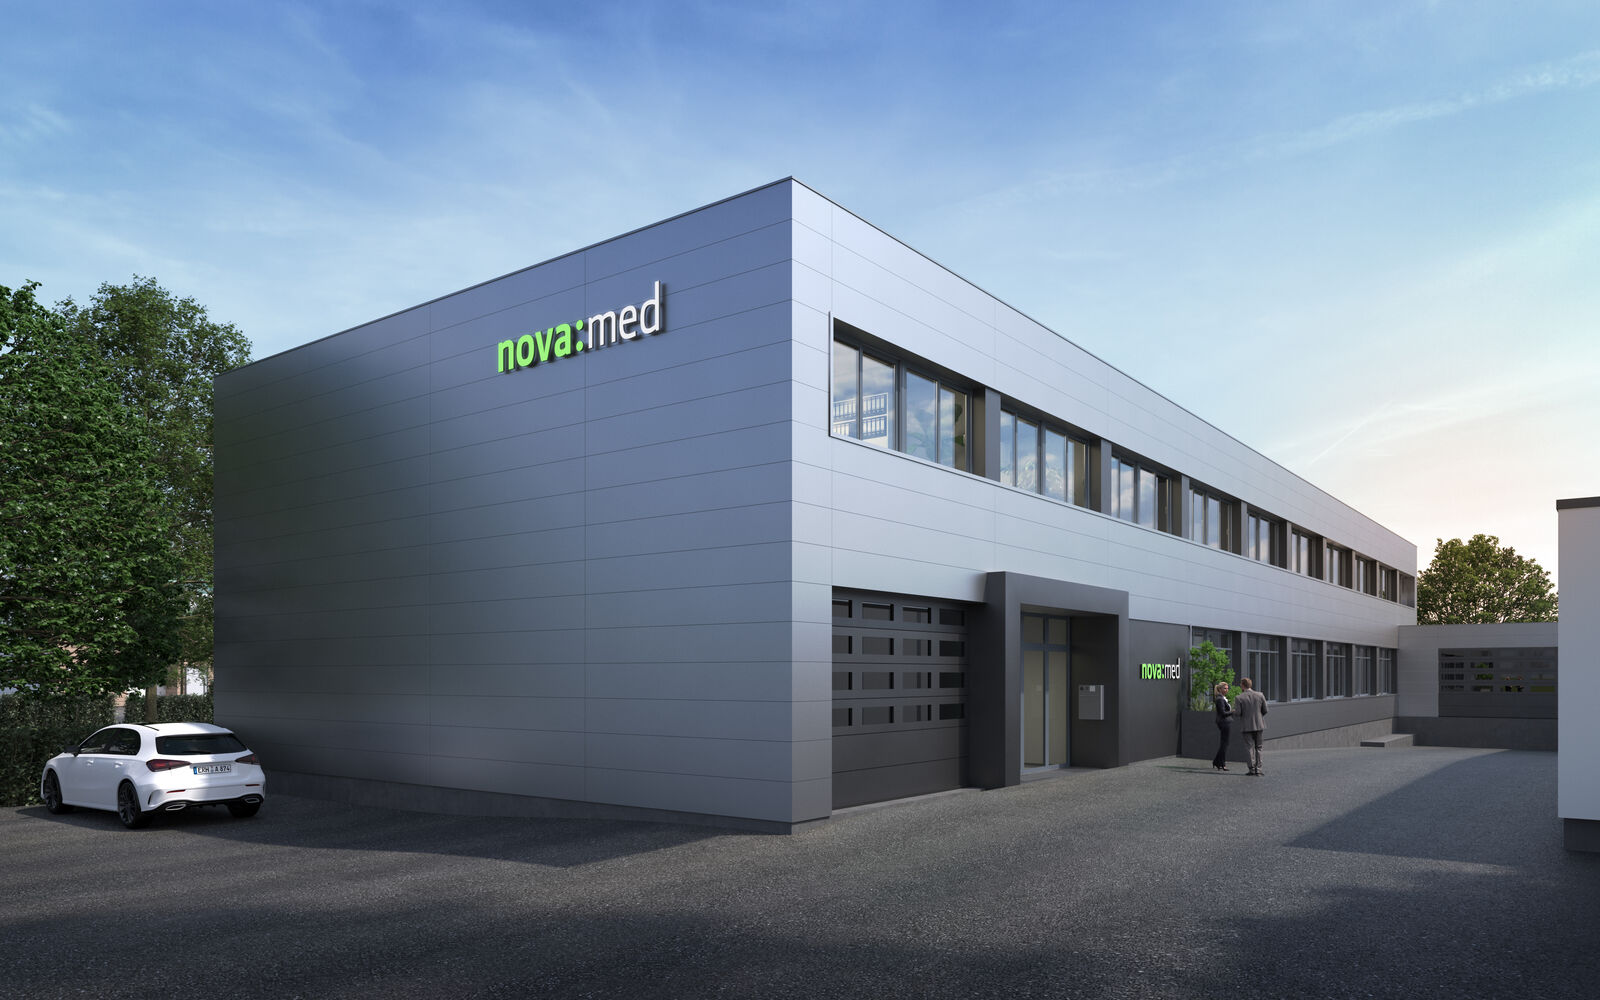 Fachberater Beatmung * - Job - nova:med GmbH & Co. KG